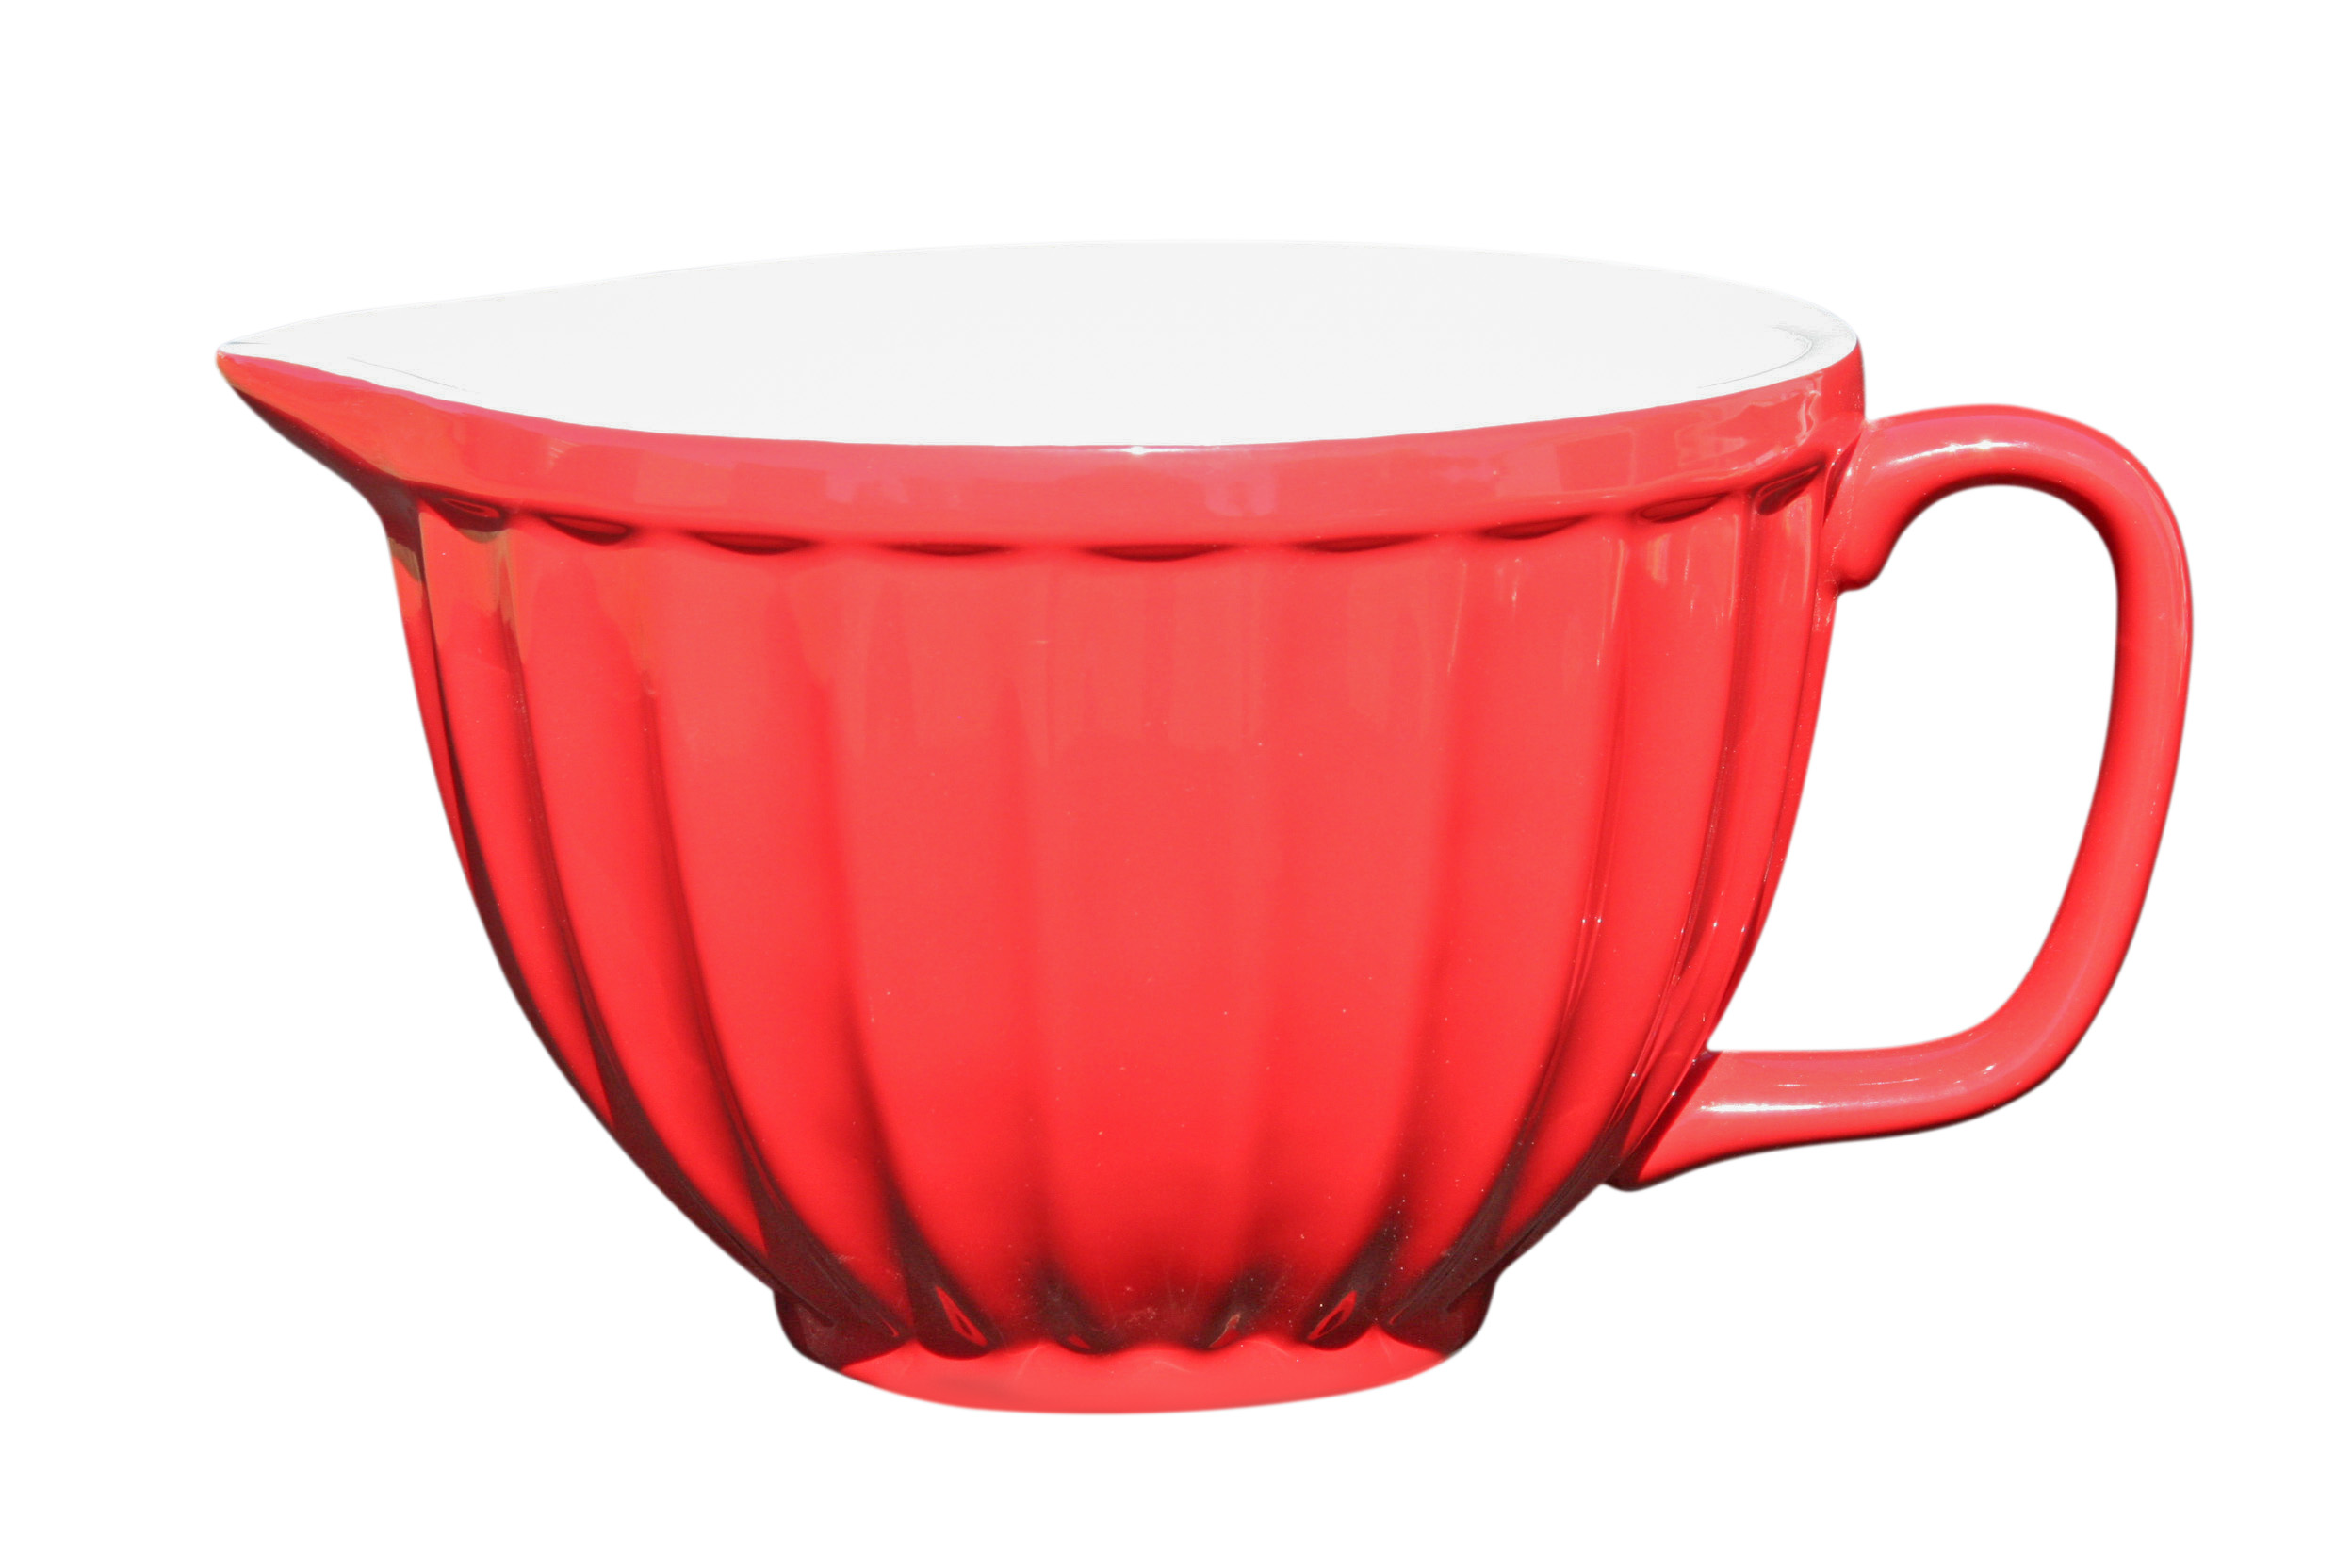 Teacup Mixing Bowl Large Red